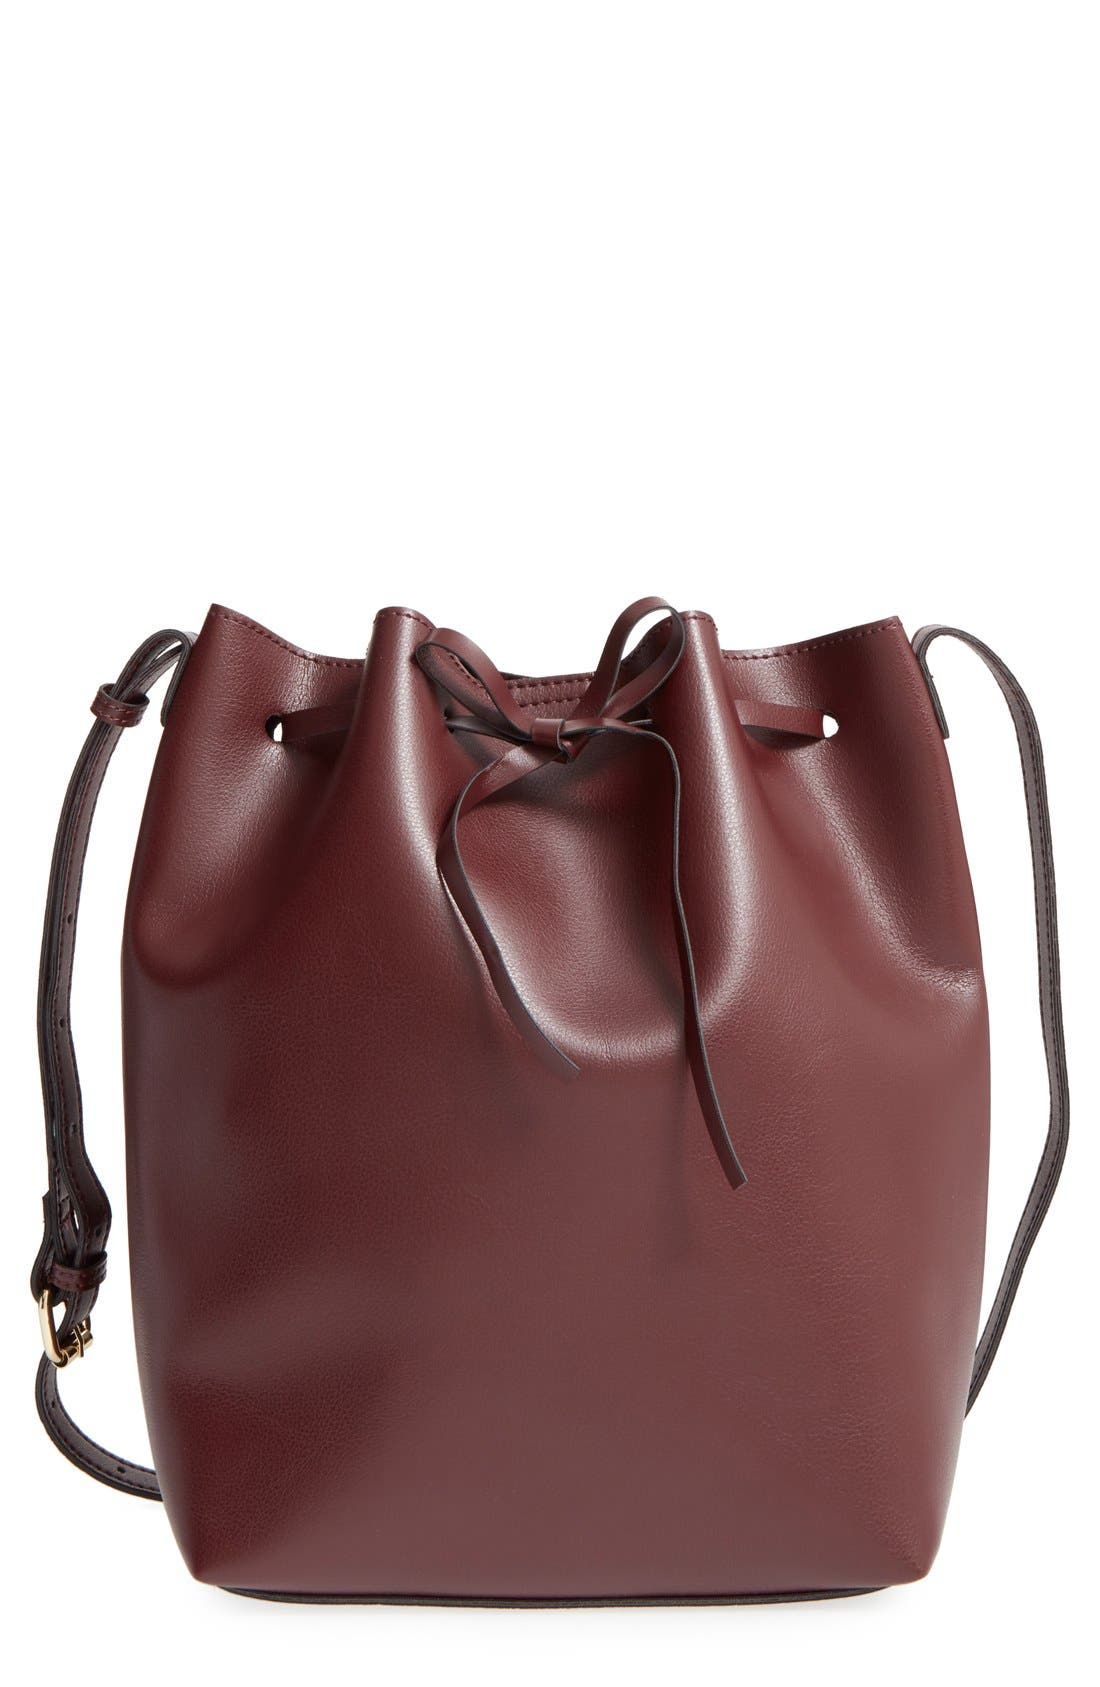 Alternate Image 1 Selected - Sole Society 'Blackwood' Faux Leather Bucket Bag